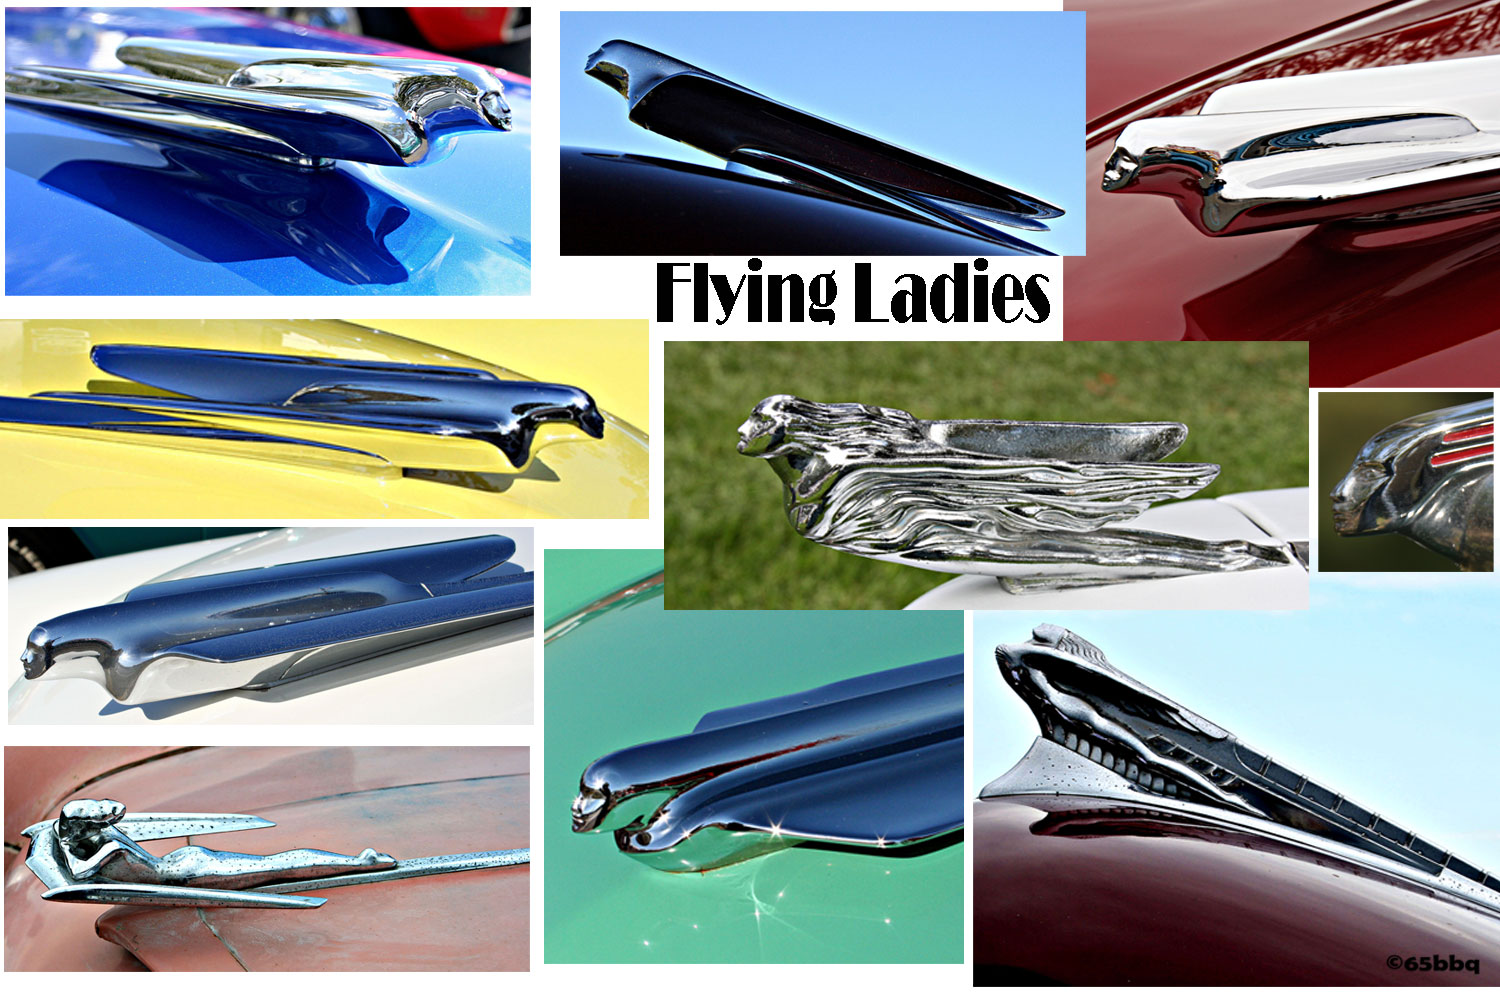 The flying ladies of the classic car show 65bbq